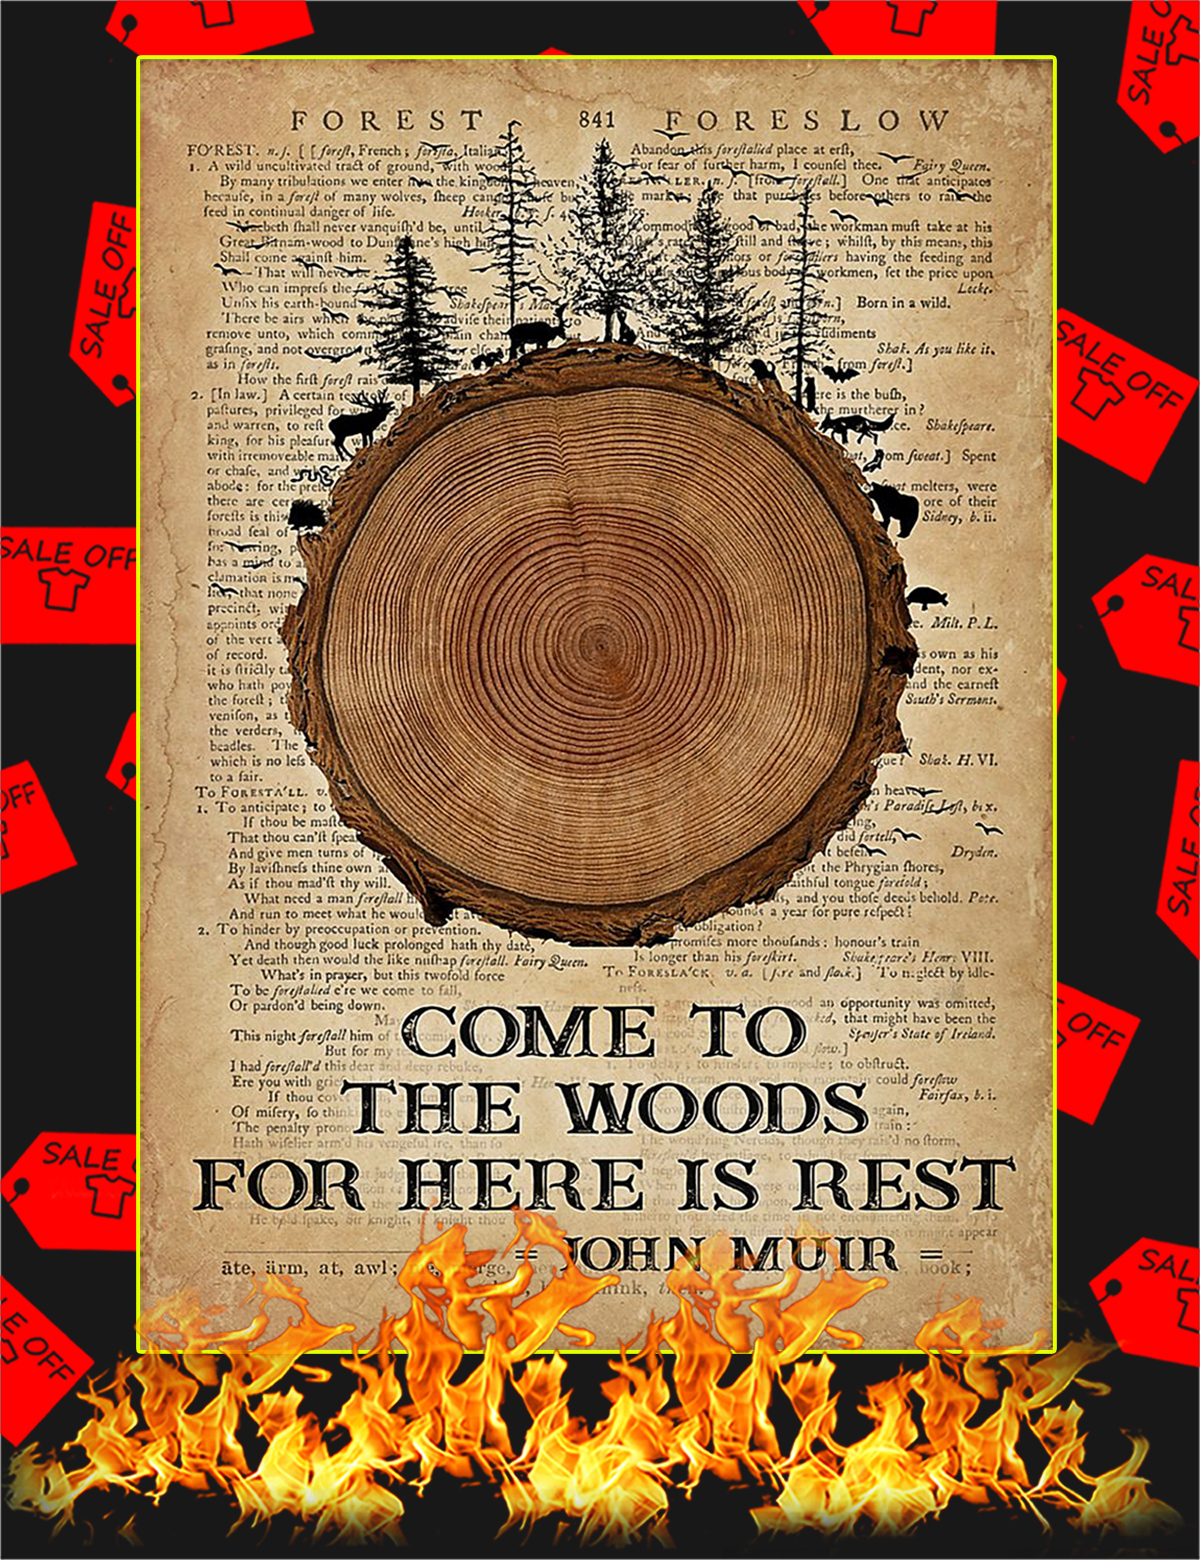 Come to the woods for here is rest poster - A1